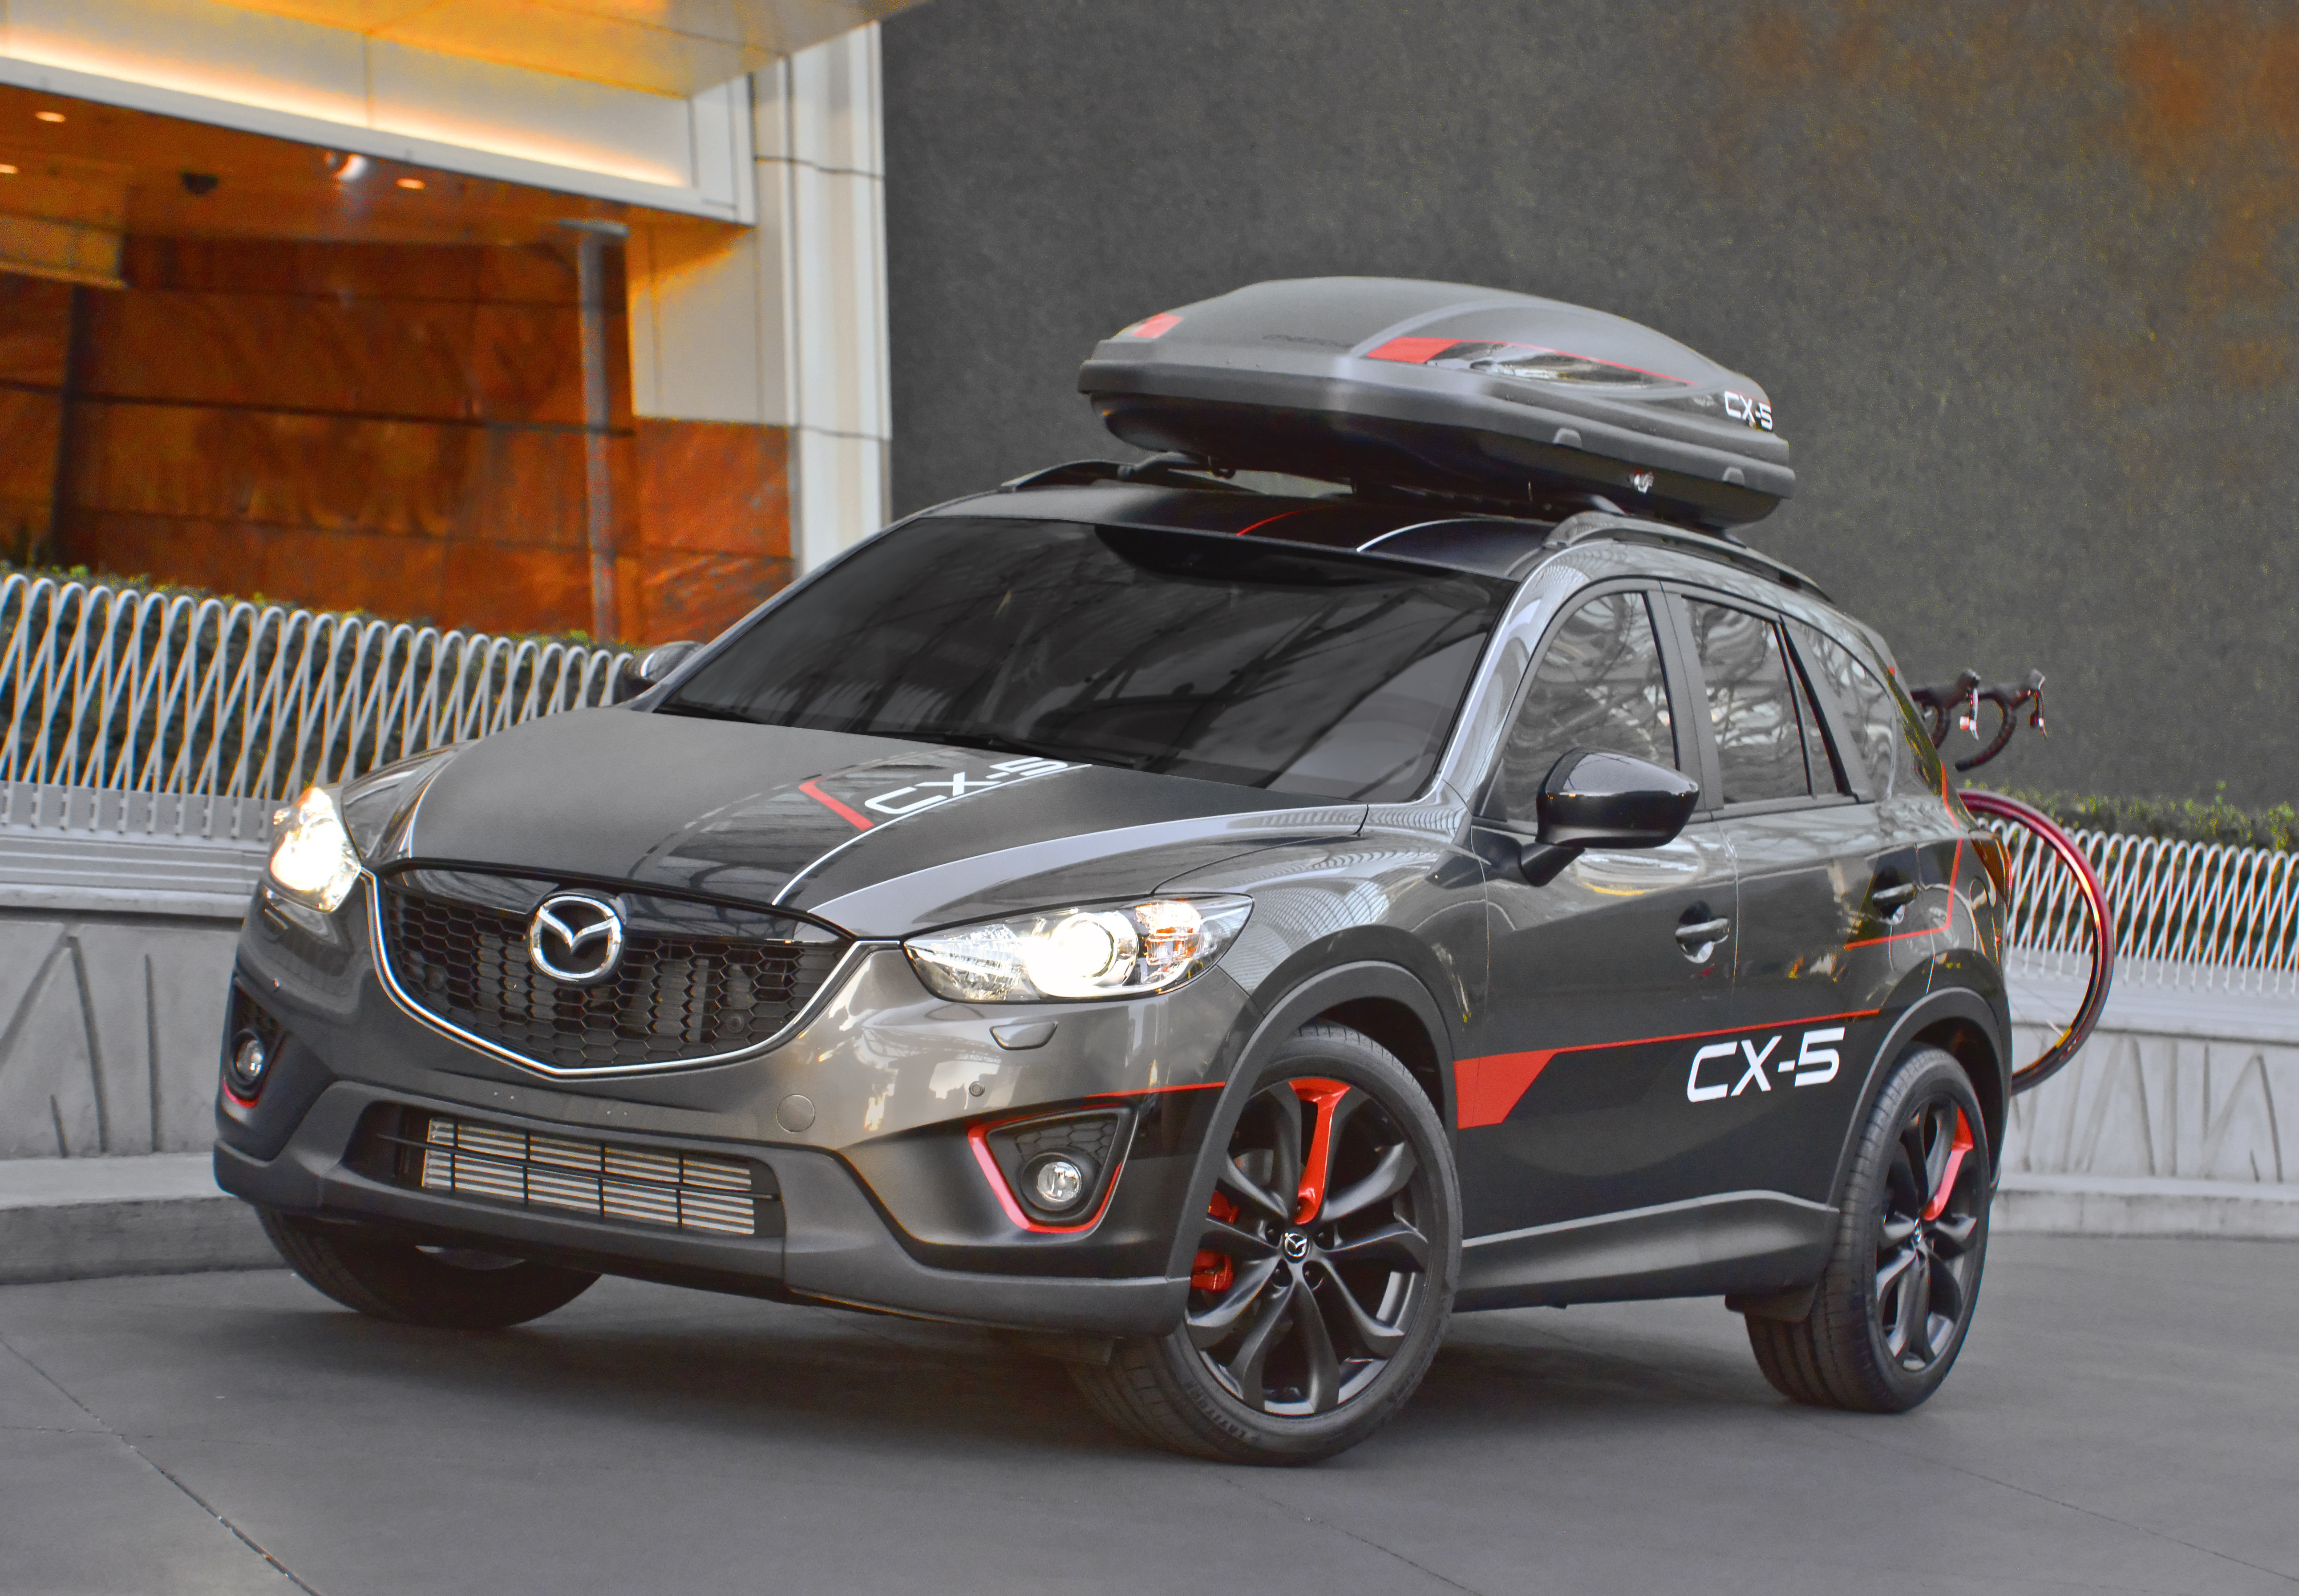 2013 Mazda Cx 5 Dempsey Review Top Speed